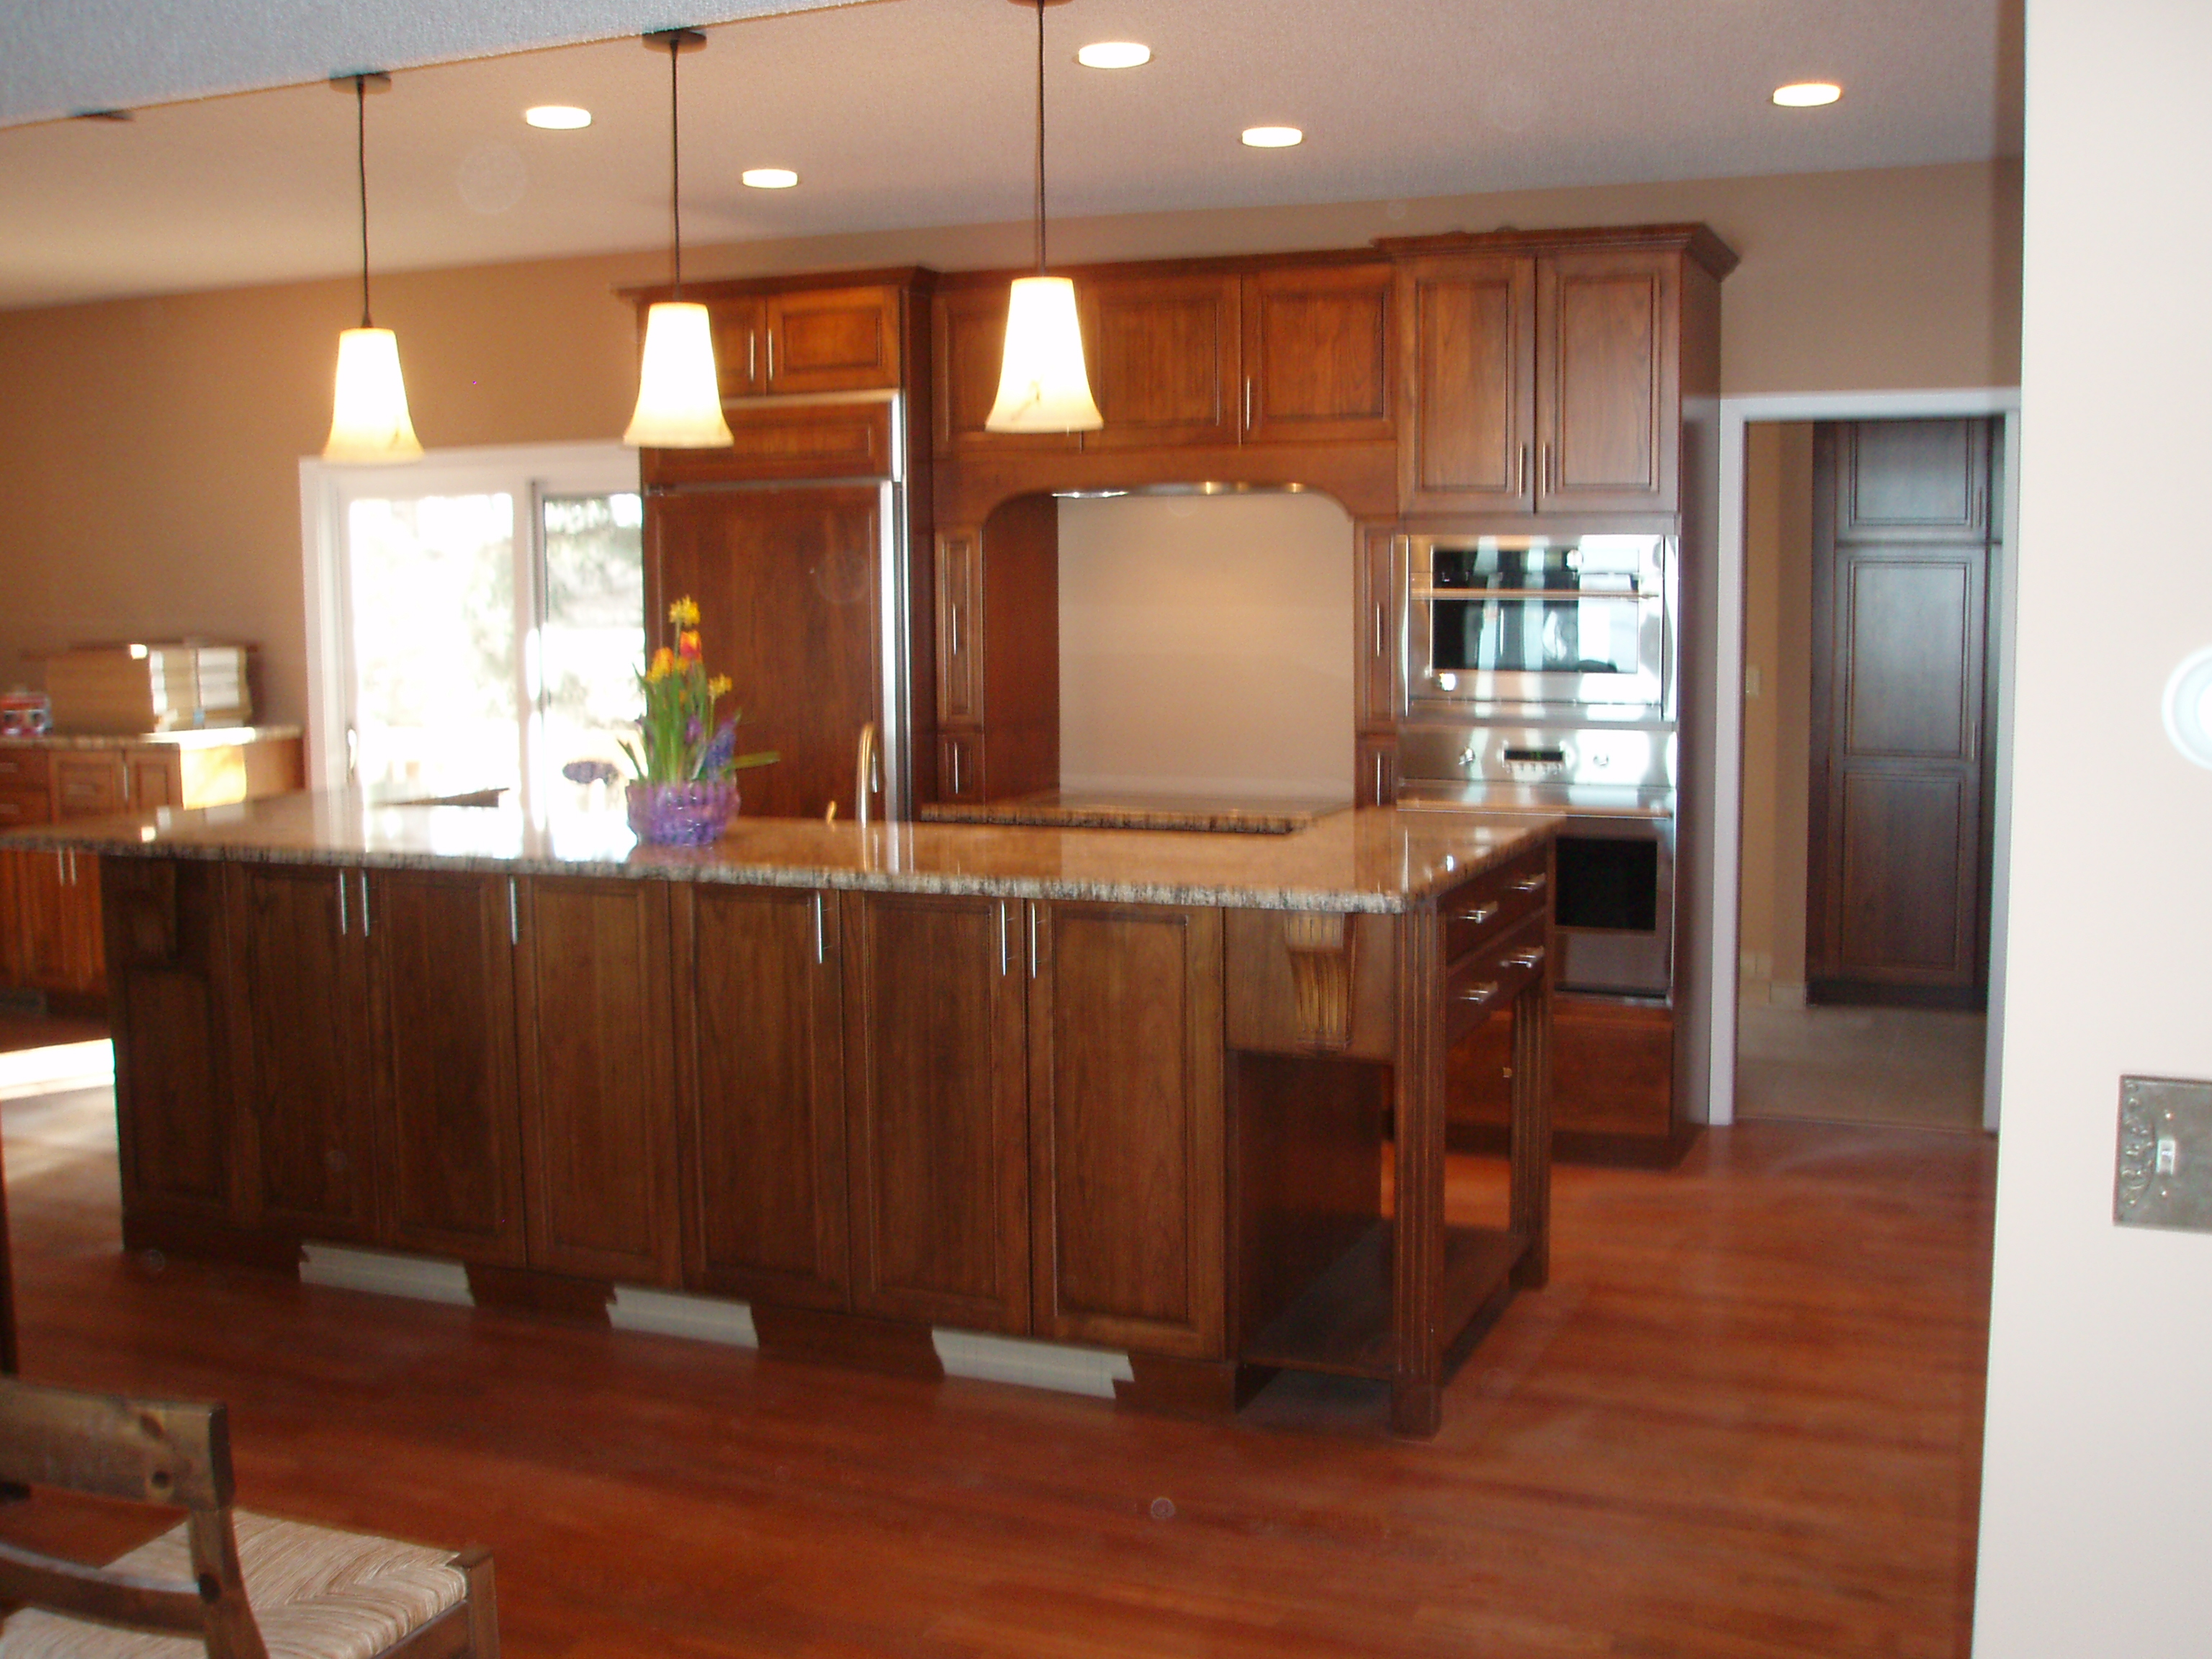 Artistic kitchen creations minneapolis mn 55416 for Kitchen creations